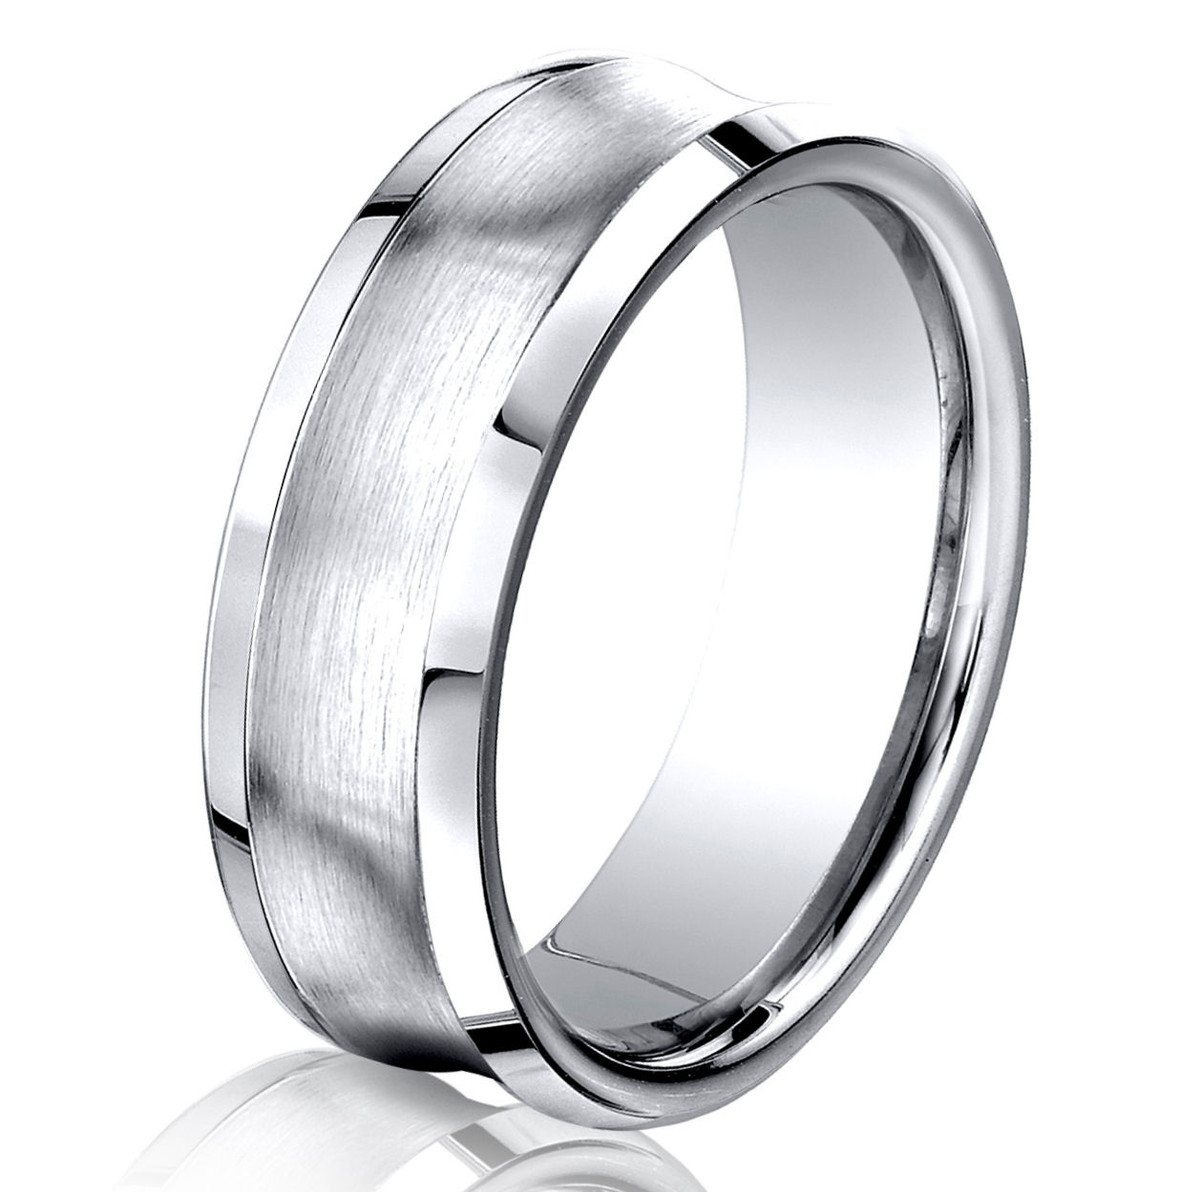 chrome rings arcadia info specs set ring cobalt diamond information wedding channel